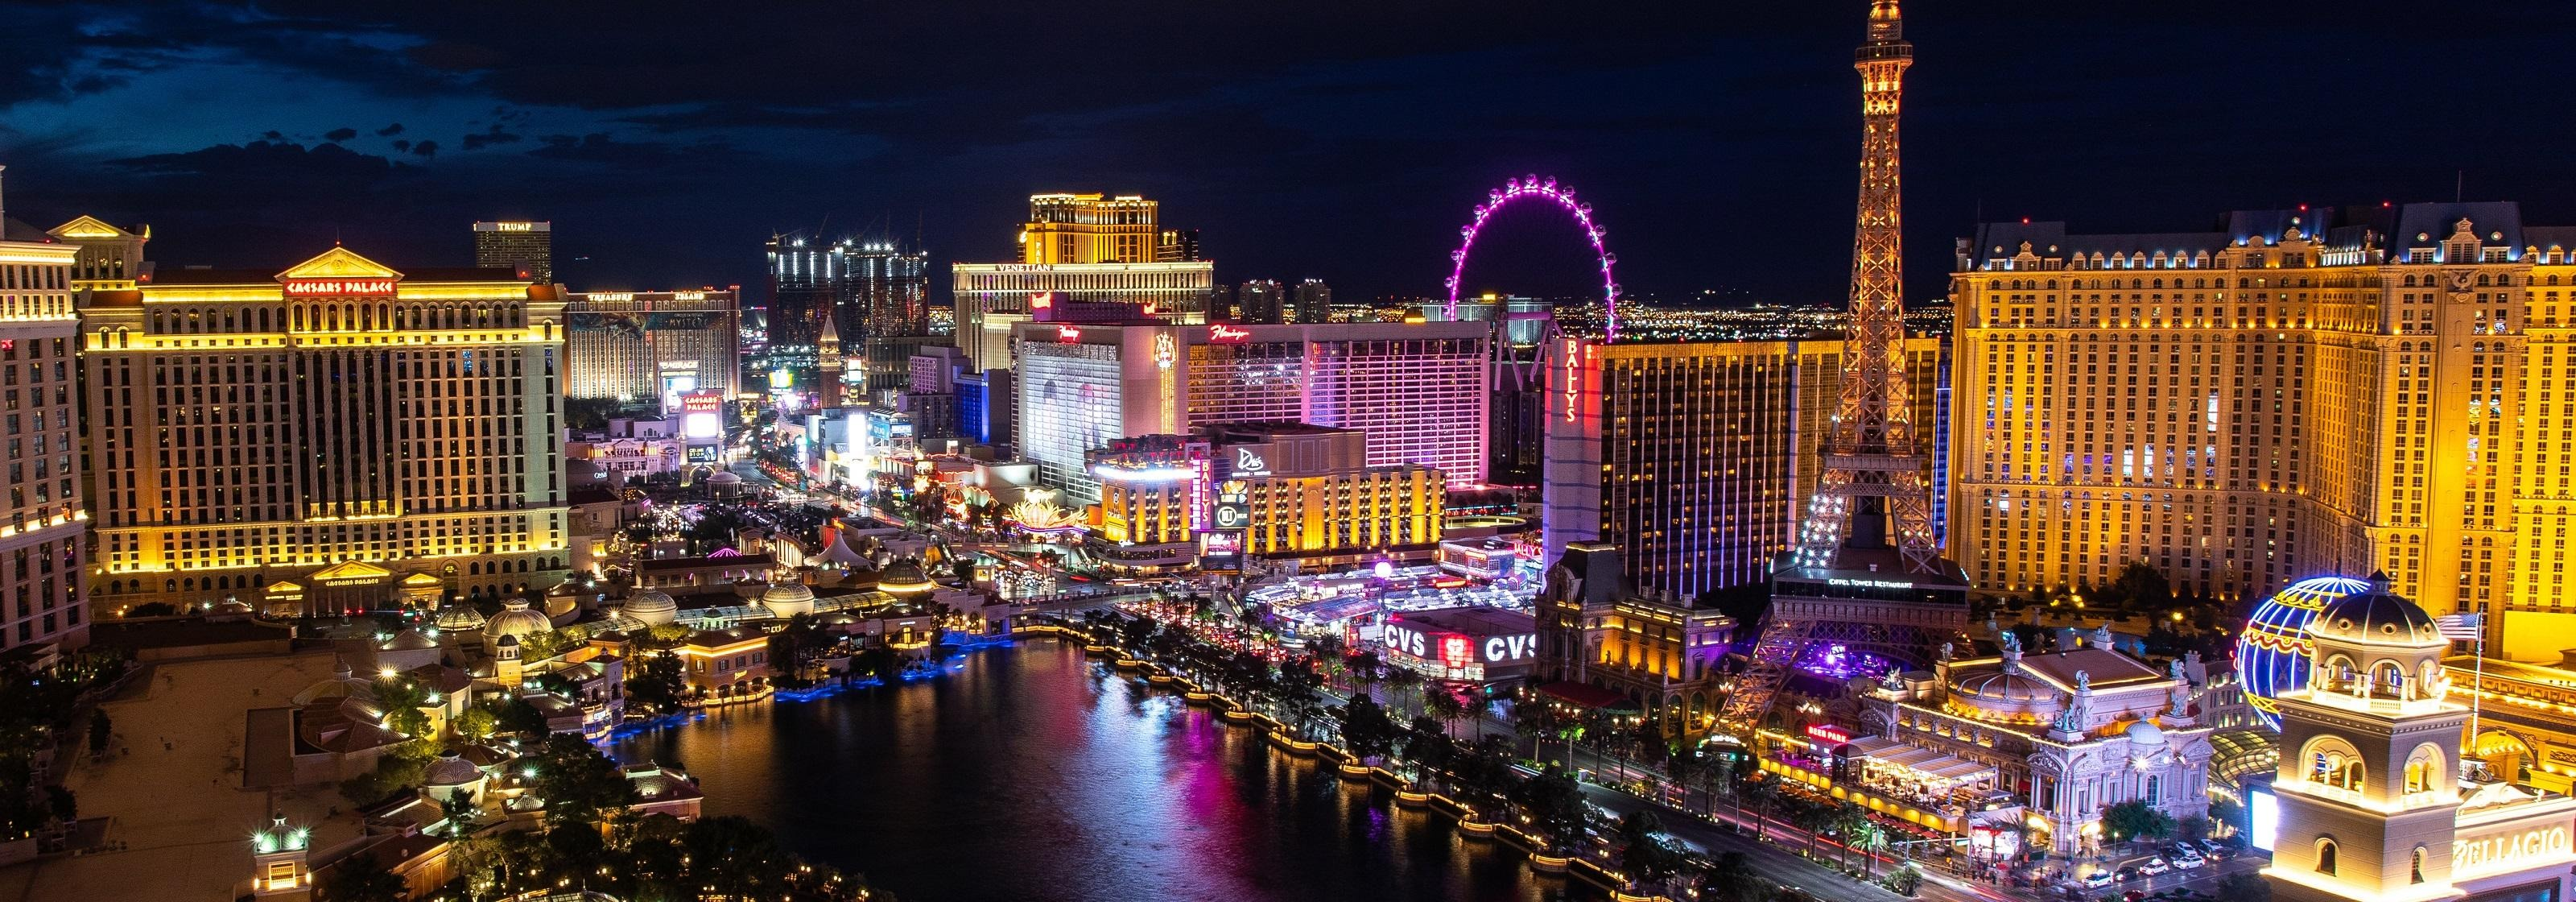 THE TOP 10 Things To Do in Las Vegas | Attractions & Activities